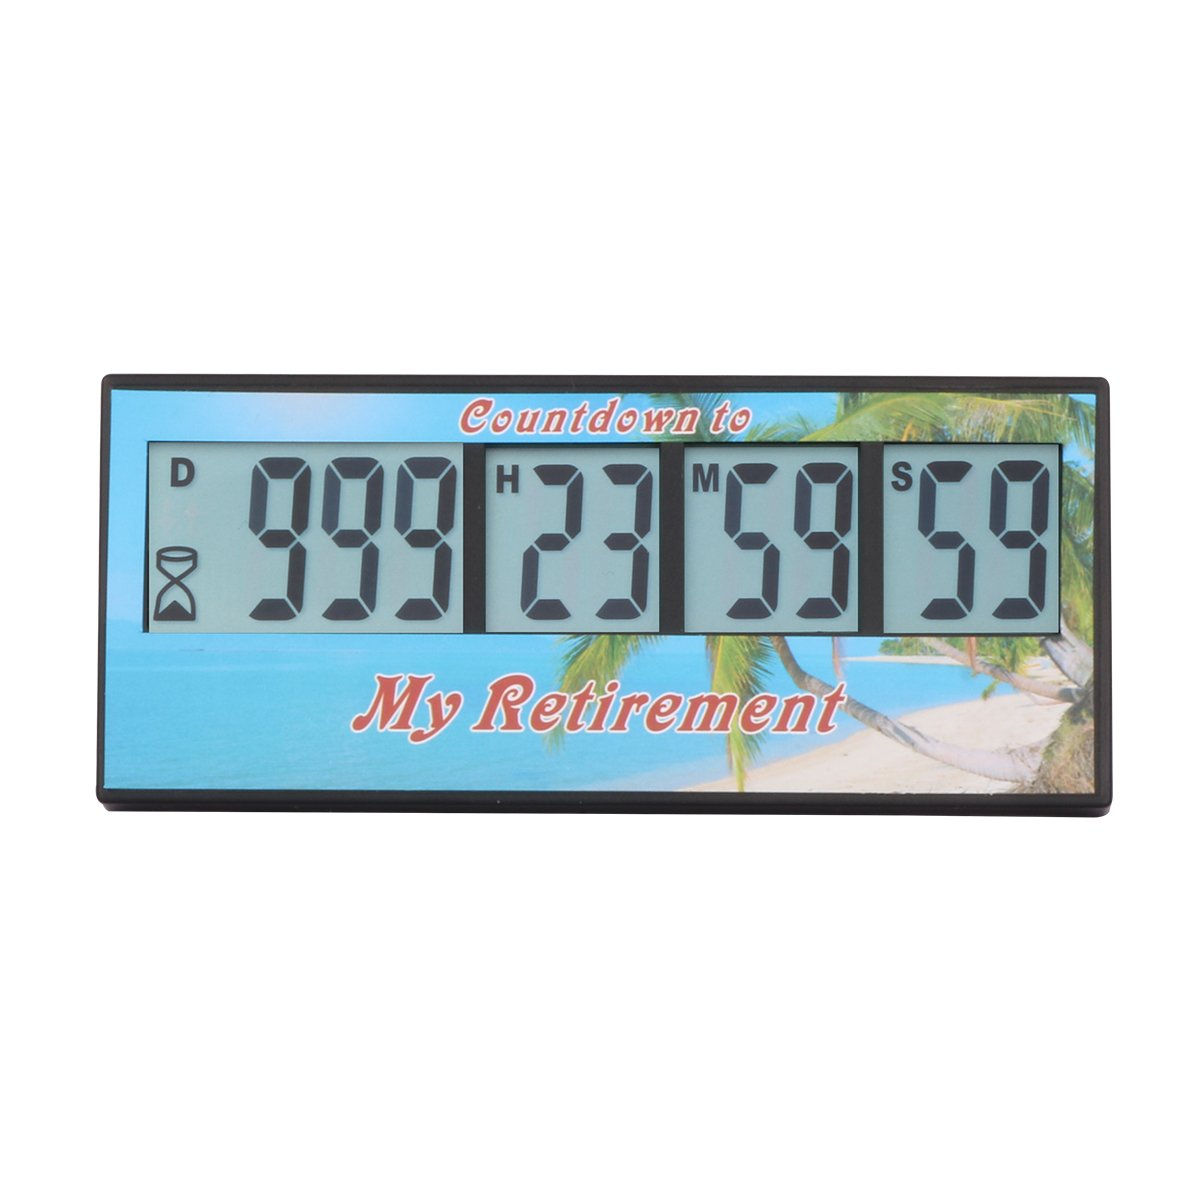 AIMILAR Digital Retirement Countdown Timer - 999 Days Count Down Timer